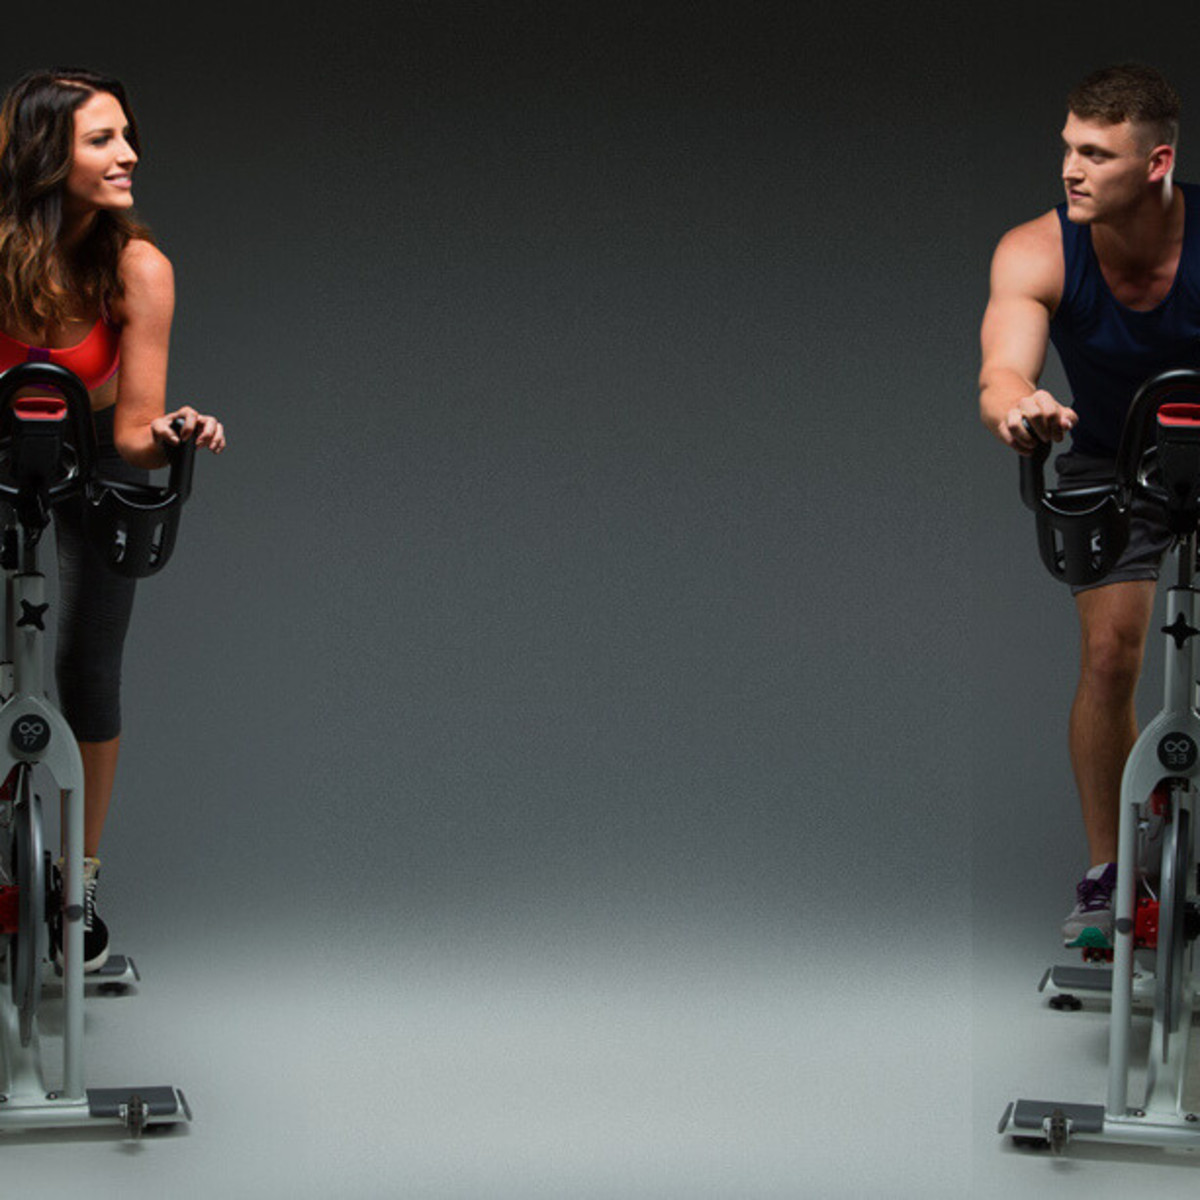 Houston, workout tips with Ryde instructor Morgan Bocca, Feb 2017, ryde river oaks spinning